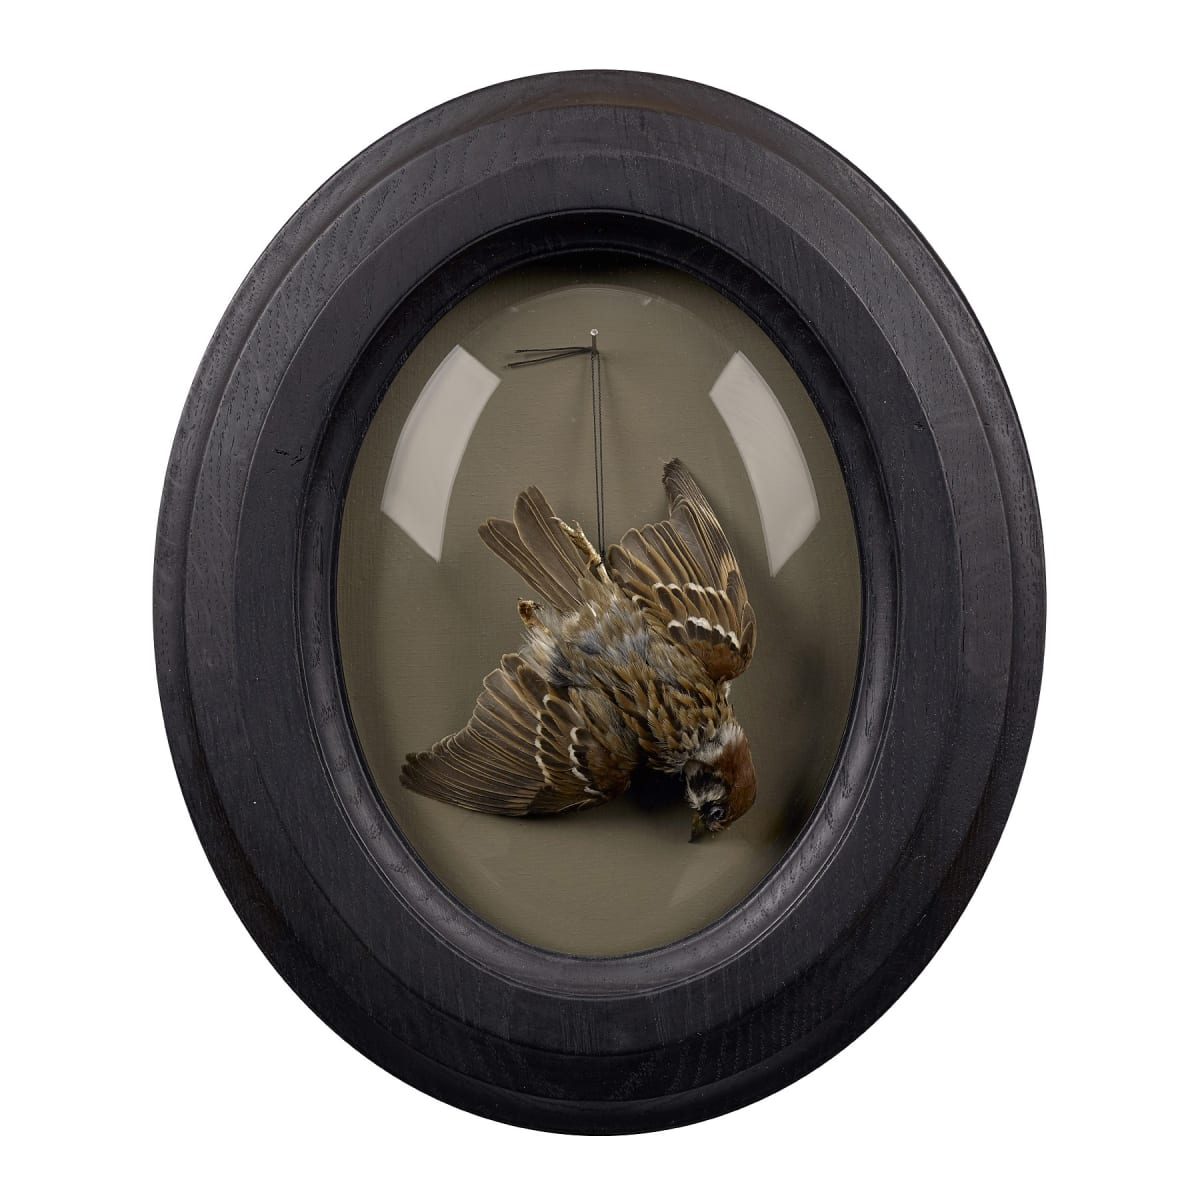 Fiona Dean To Cherish, 2019 tree sparrow in restored antique frame with domed glass 30 x 26 x 4 cm